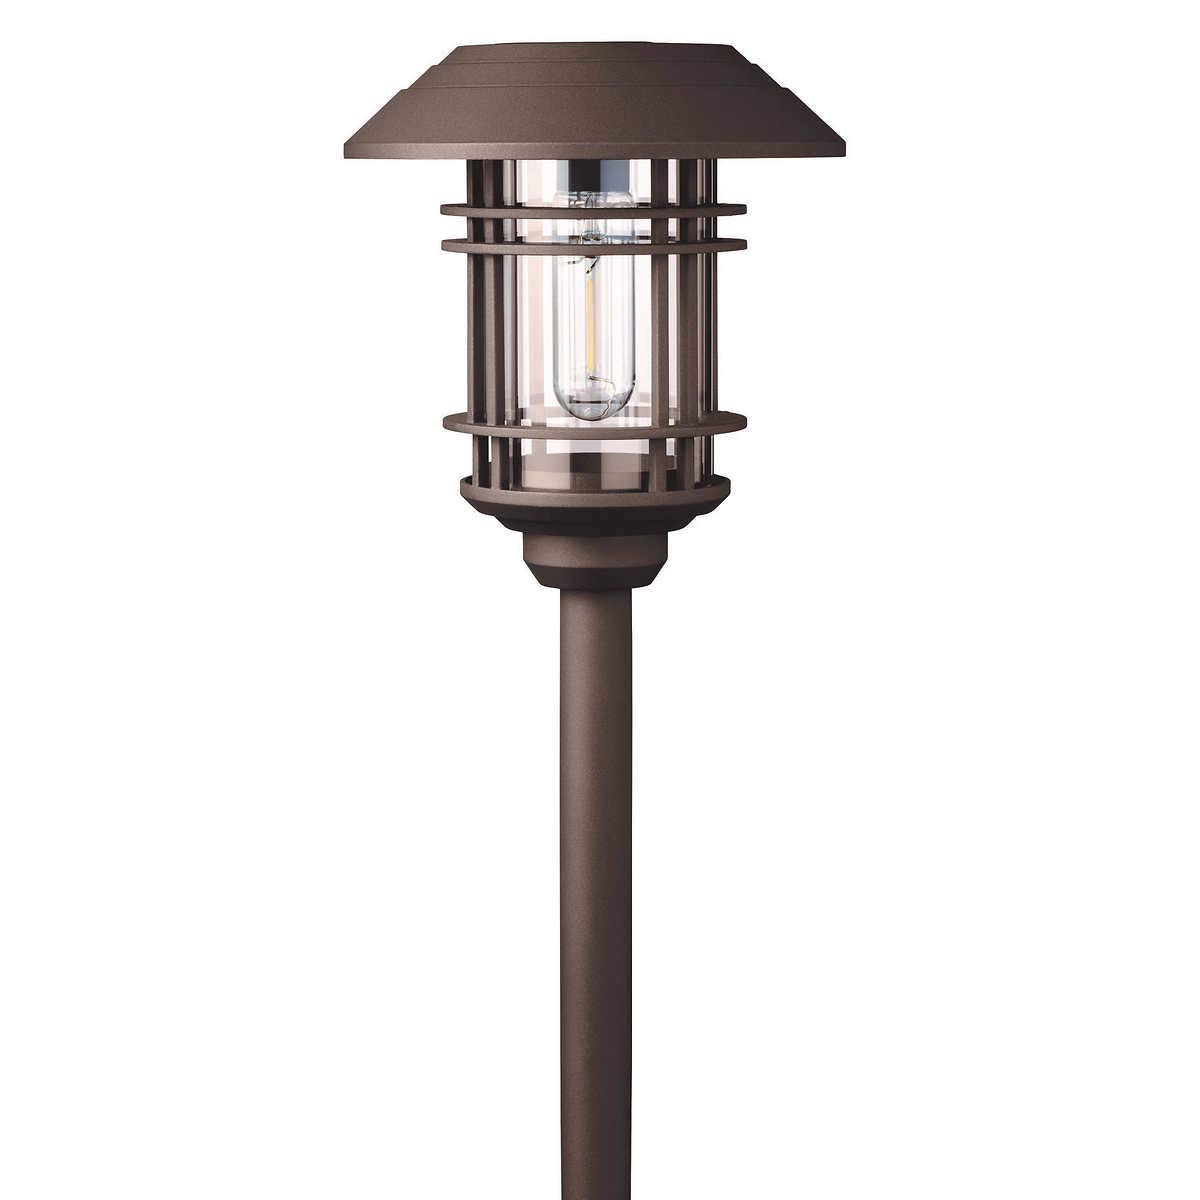 Naturally BIG Solar 8 pc Solar LED Vintage Style Pathway Lights w/ Bronze Finish by Naturally Solar